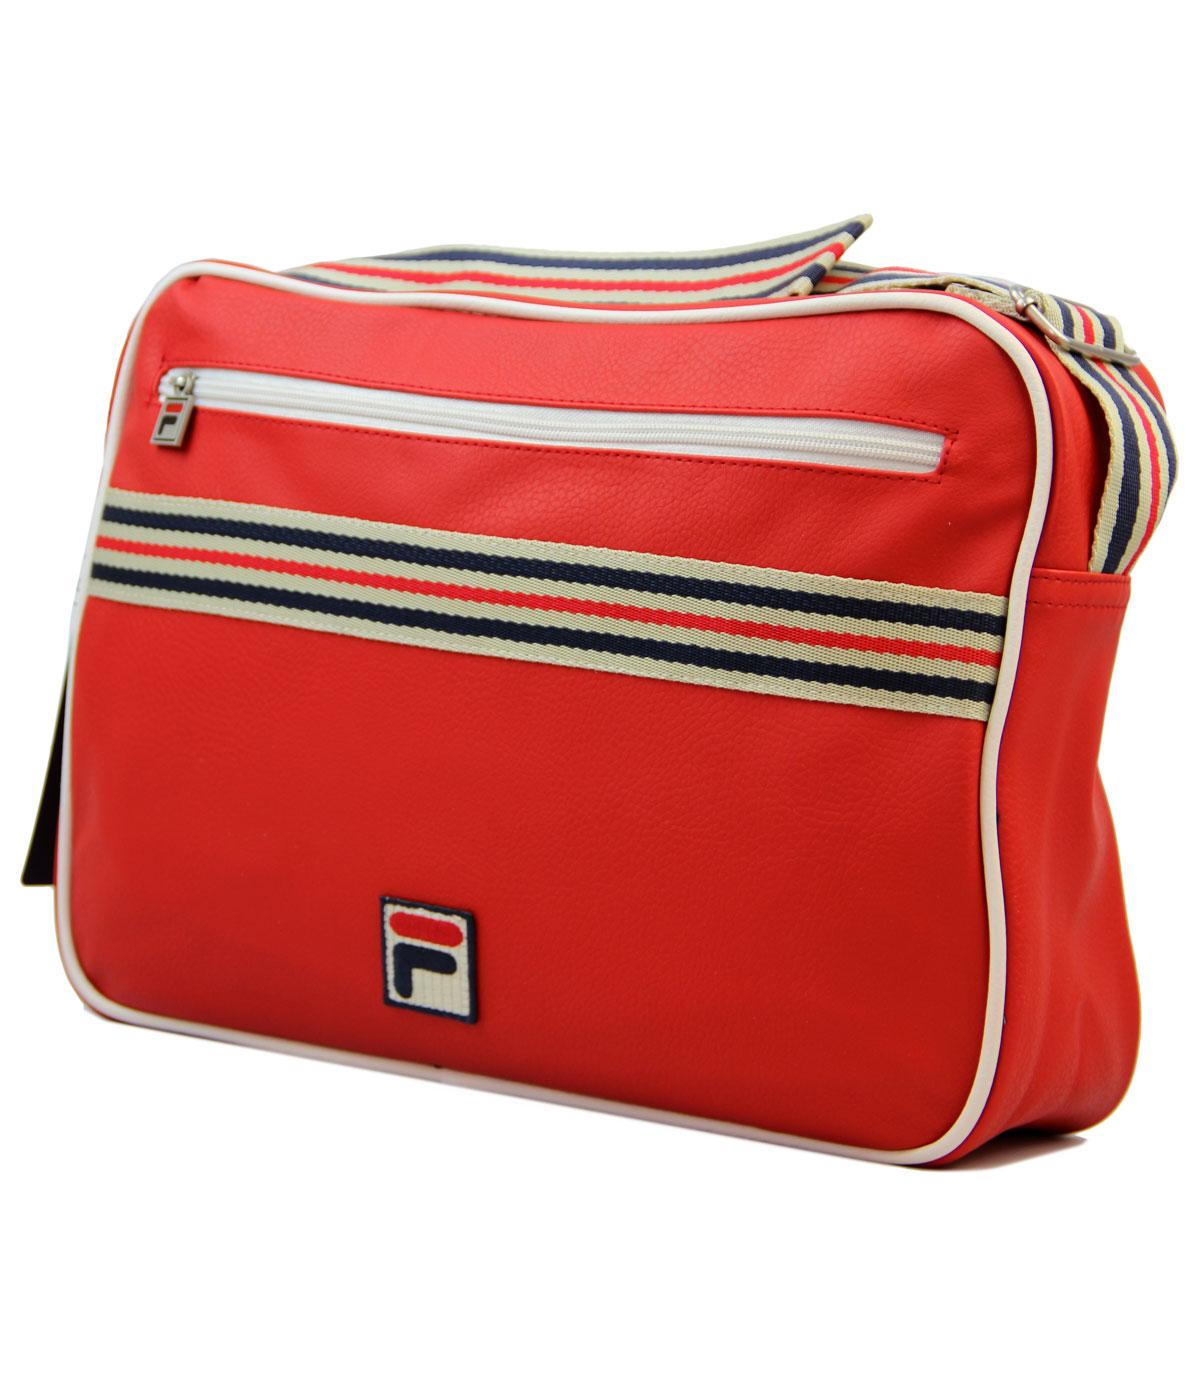 7155236e51d FILA VINTAGE Cambria Retro Mod Flight Bag in Chinese Red